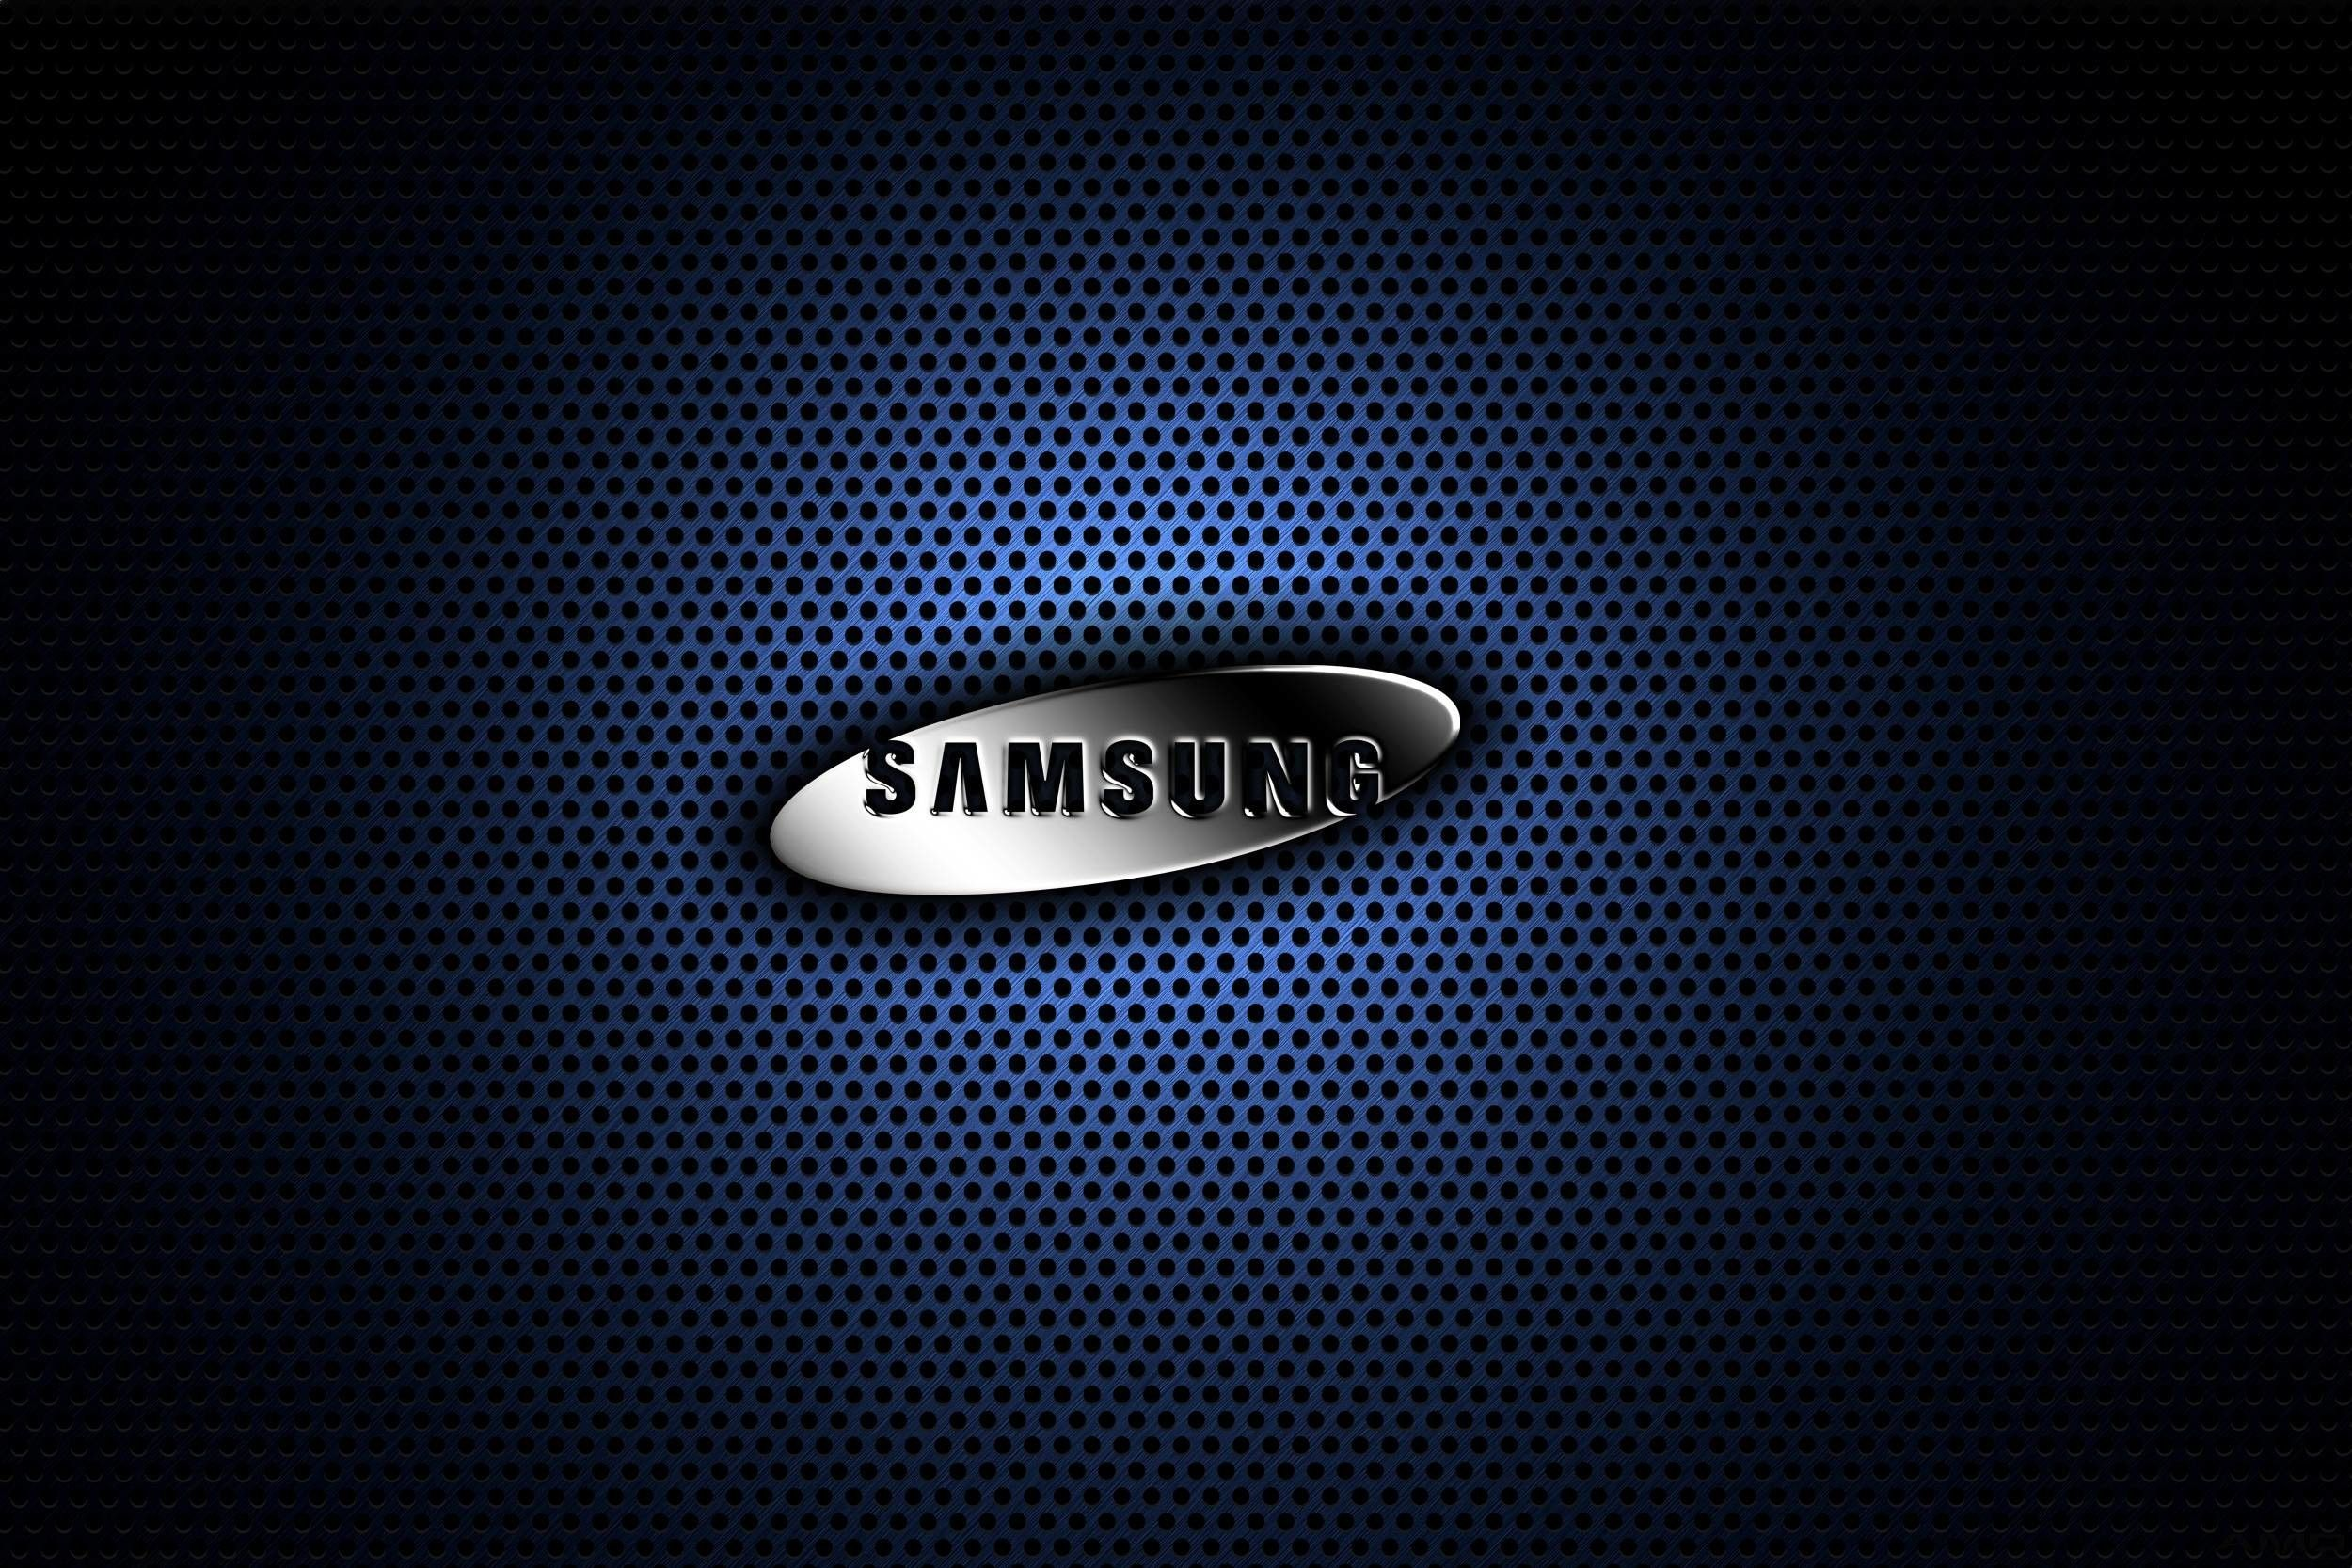 Samsung 4k Black Wallpapers Top Free Samsung 4k Black Backgrounds Wallpaperaccess